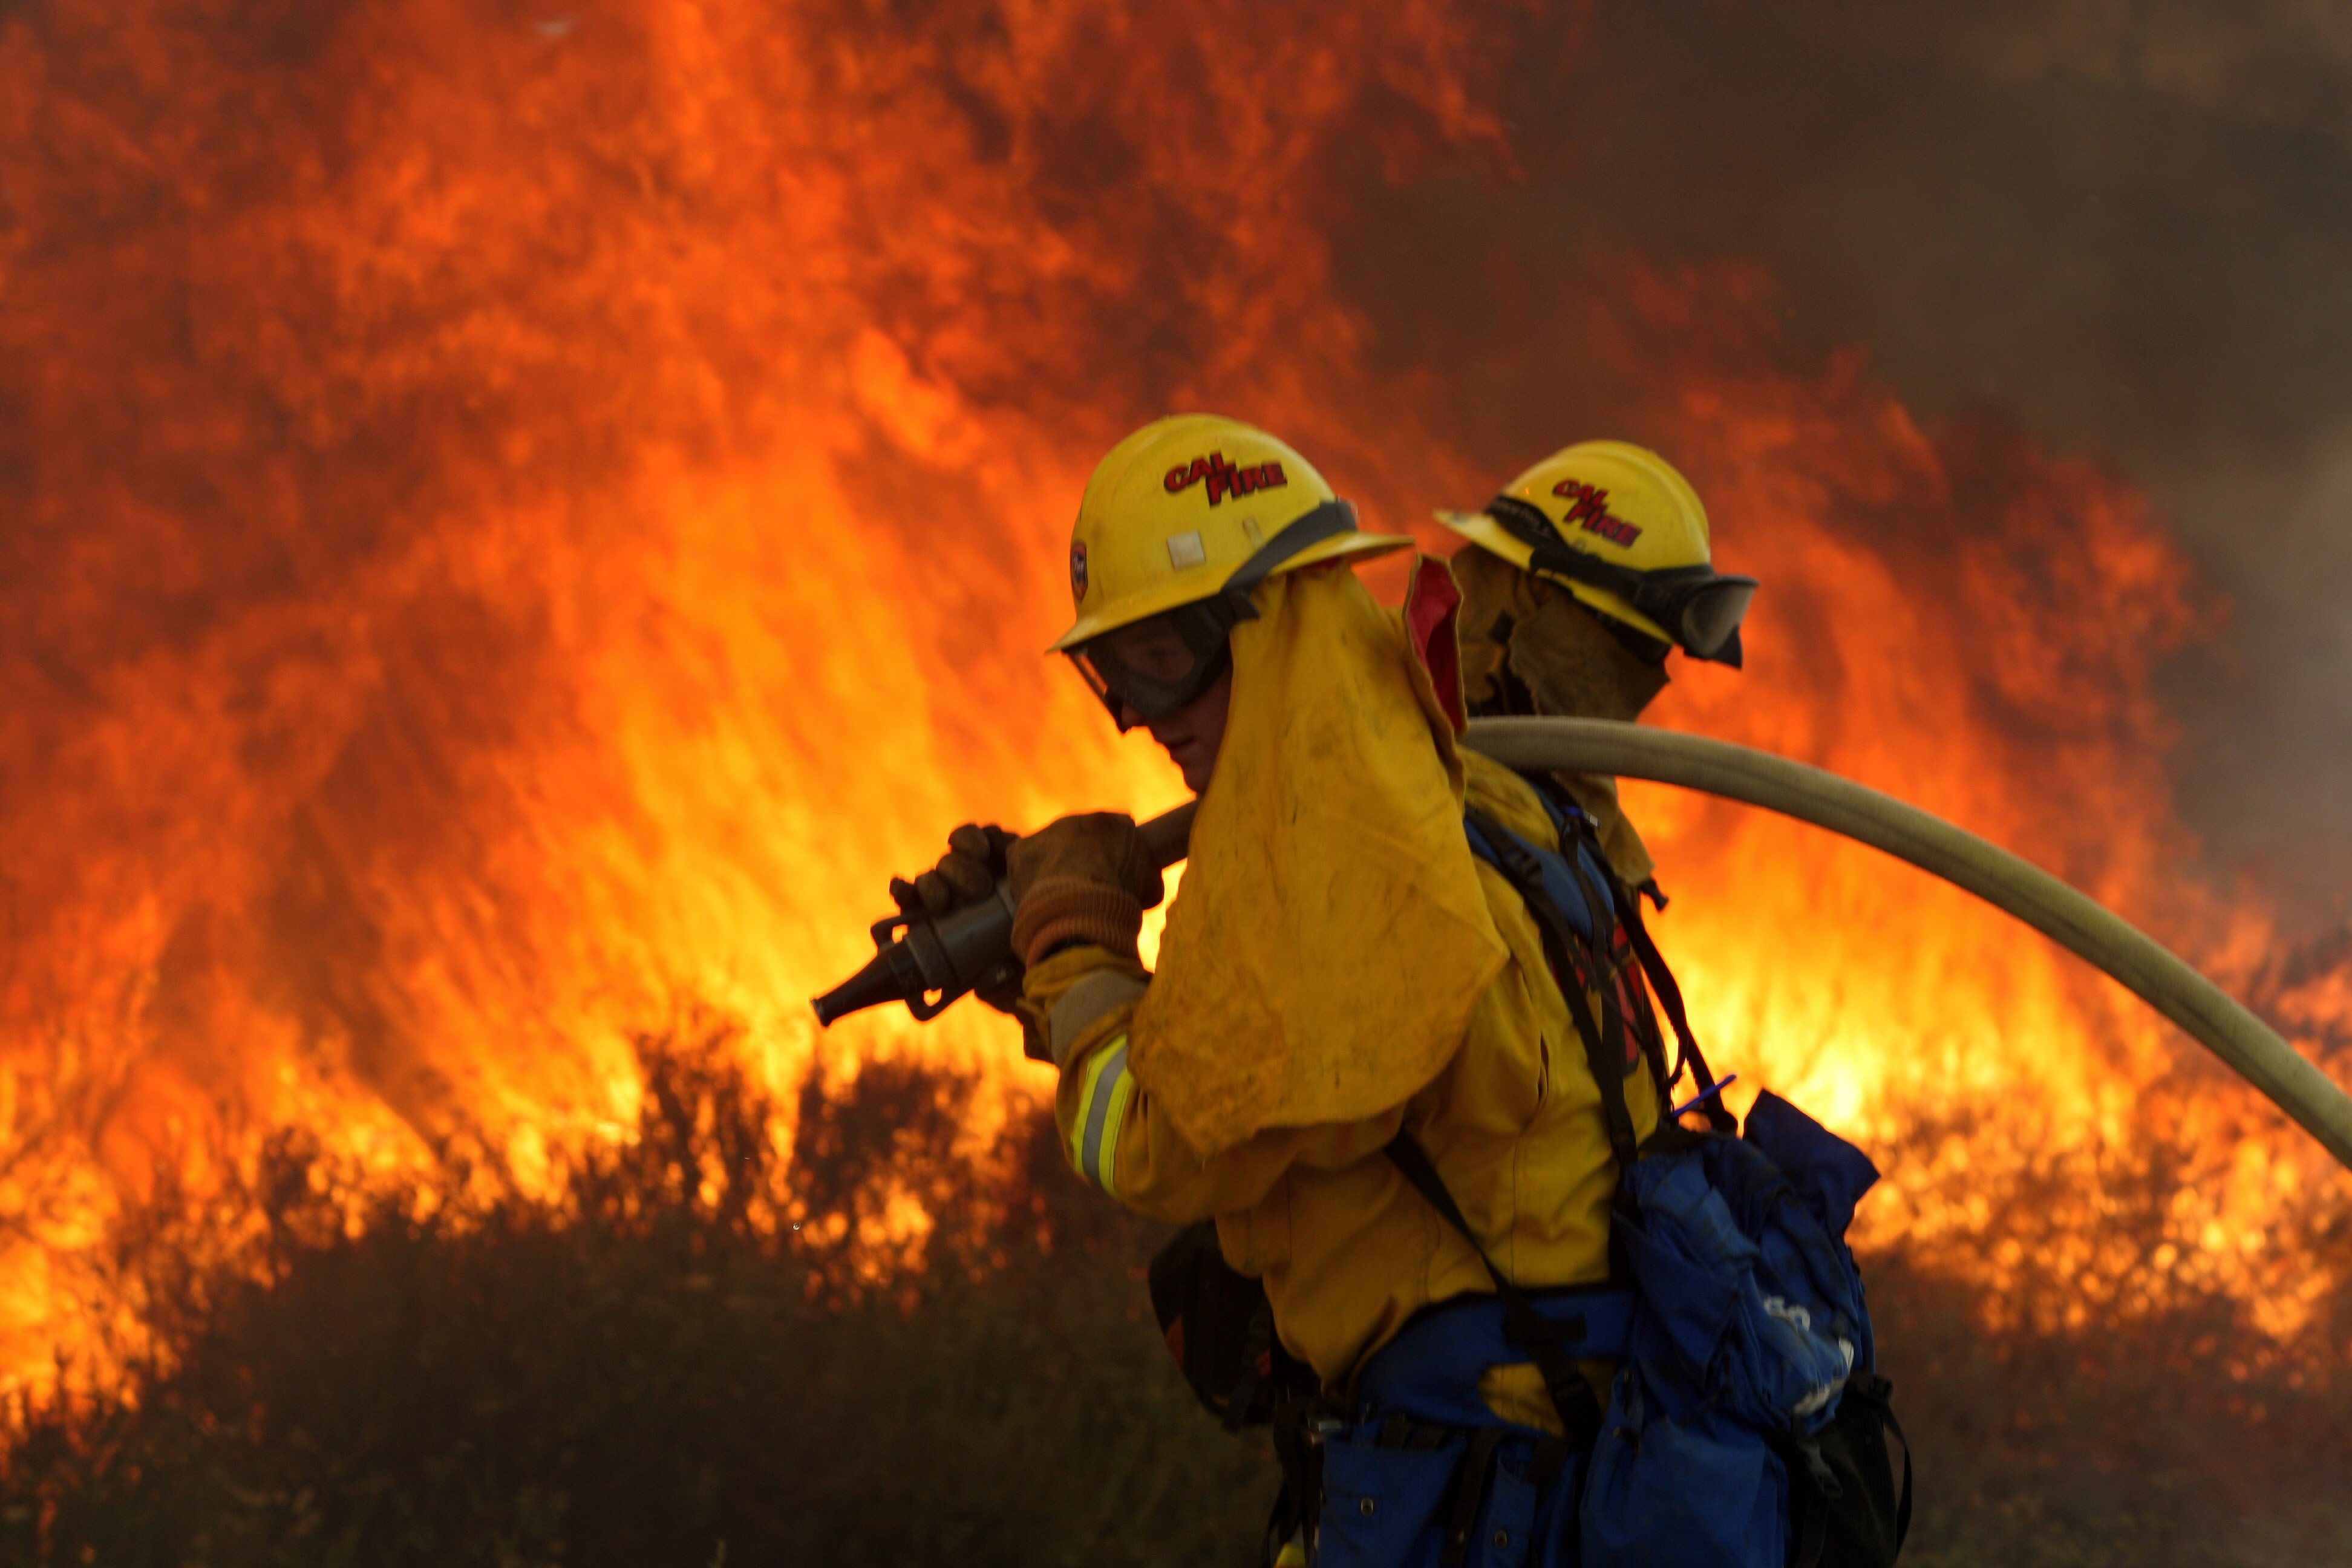 Cal Fire crews battle a wildfire in the Deer Springs area east of Fallbrook in San Diego on May 14, 2014.